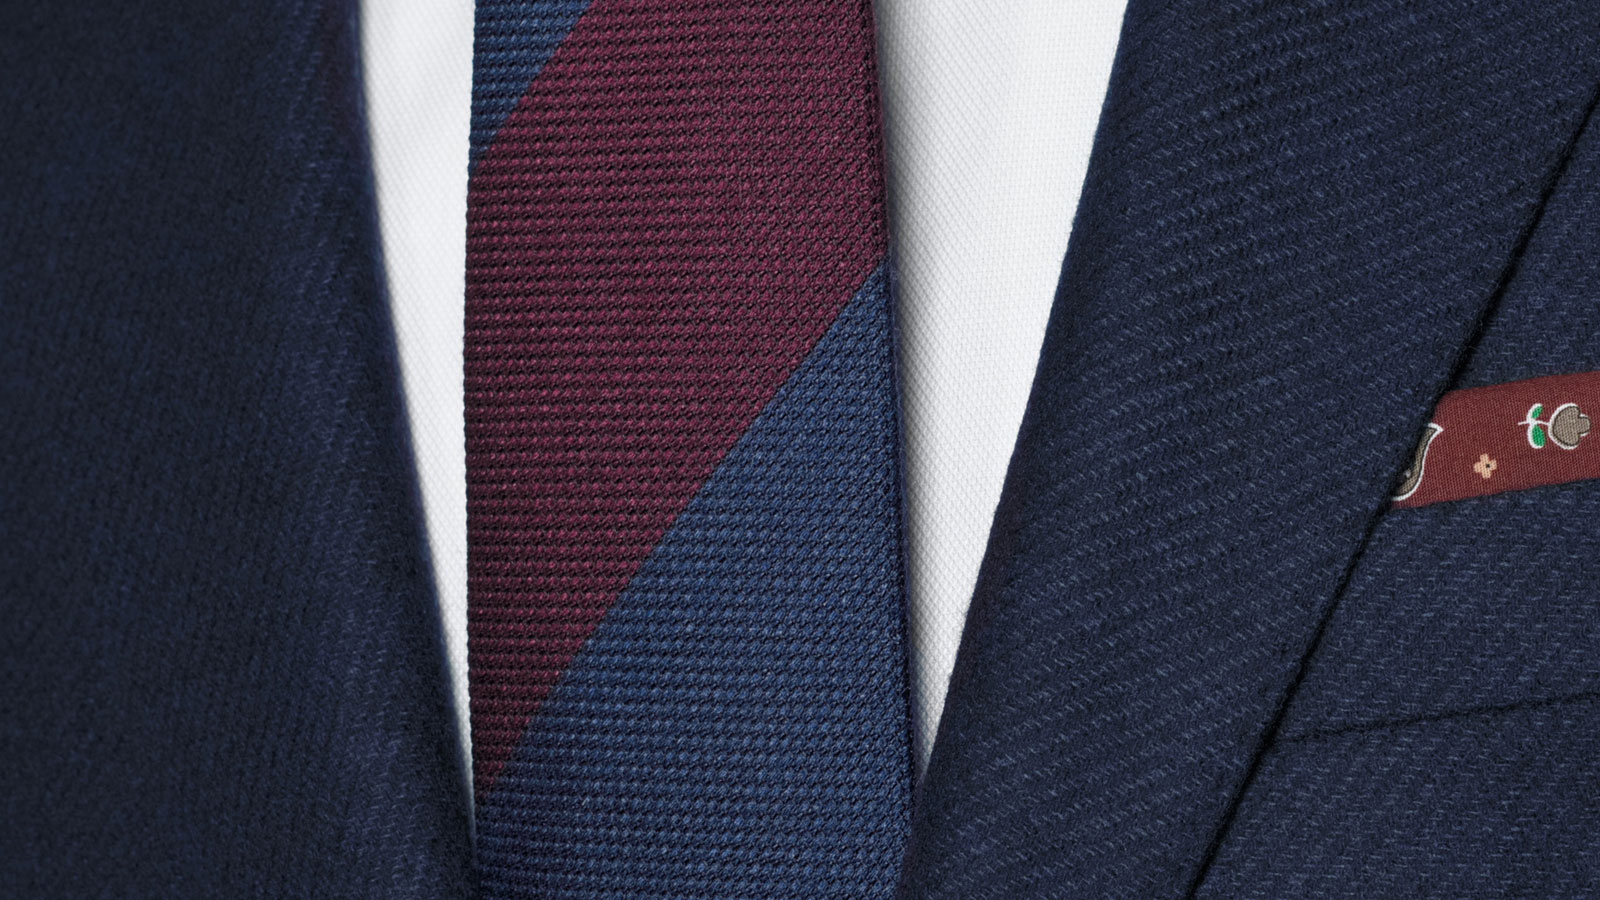 Navy Twill Wool & Cashmere suit - slider image 1